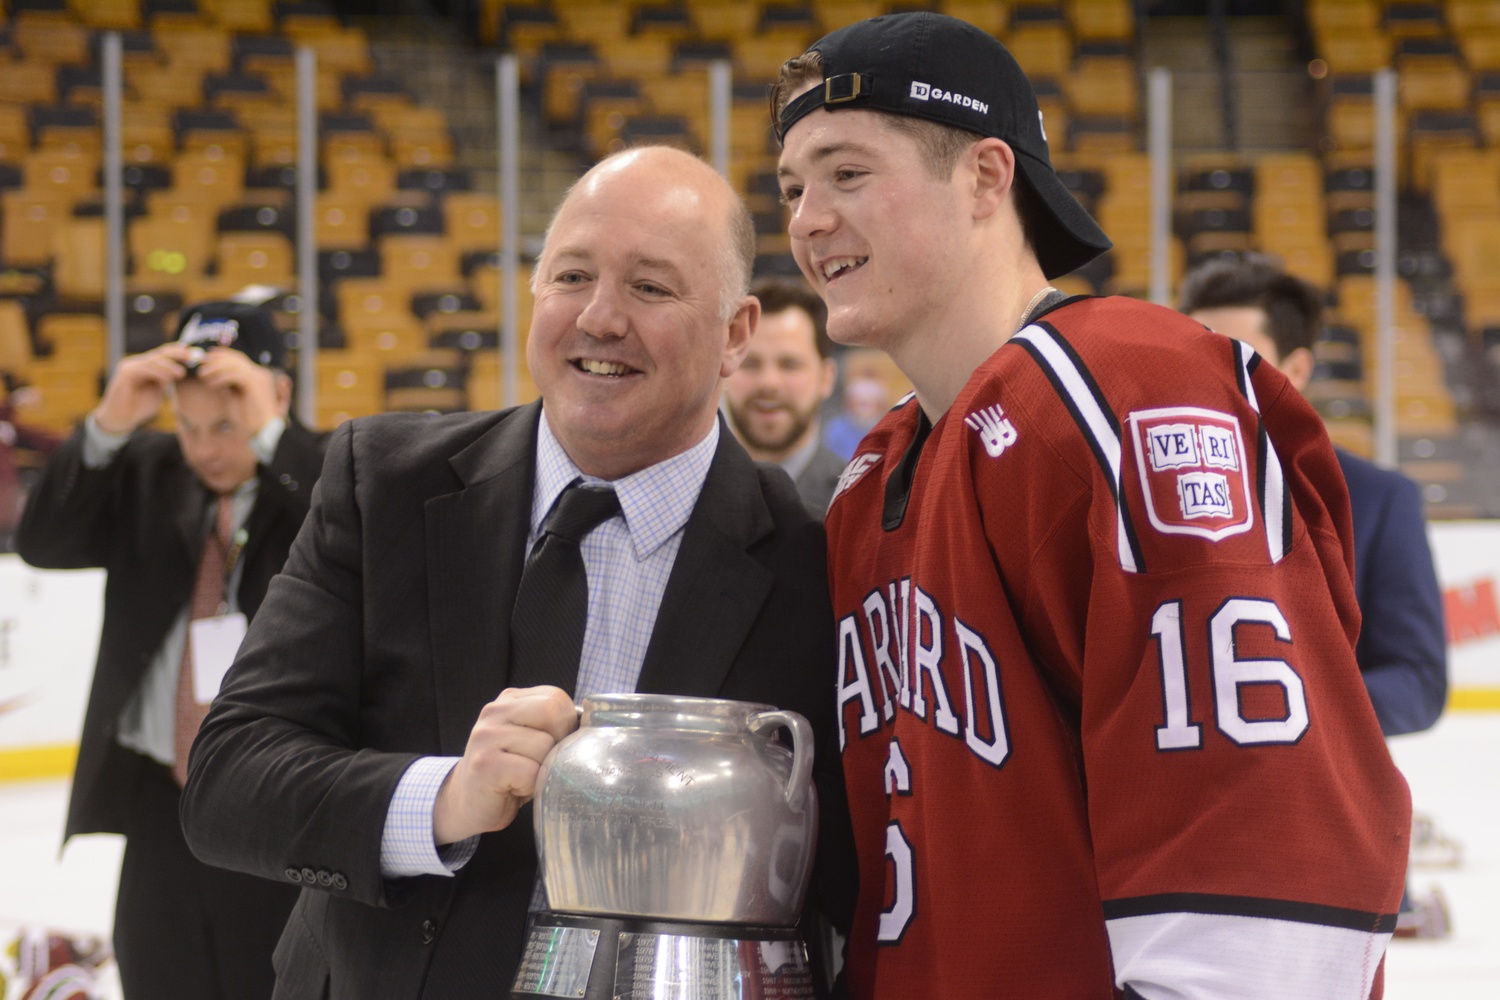 The Donato men enjoyed last season's Beanpot title as both a father-son duo and a player-coach pair. The tournament victory is surely among Ryan's greatest hockey moments shared with dad.